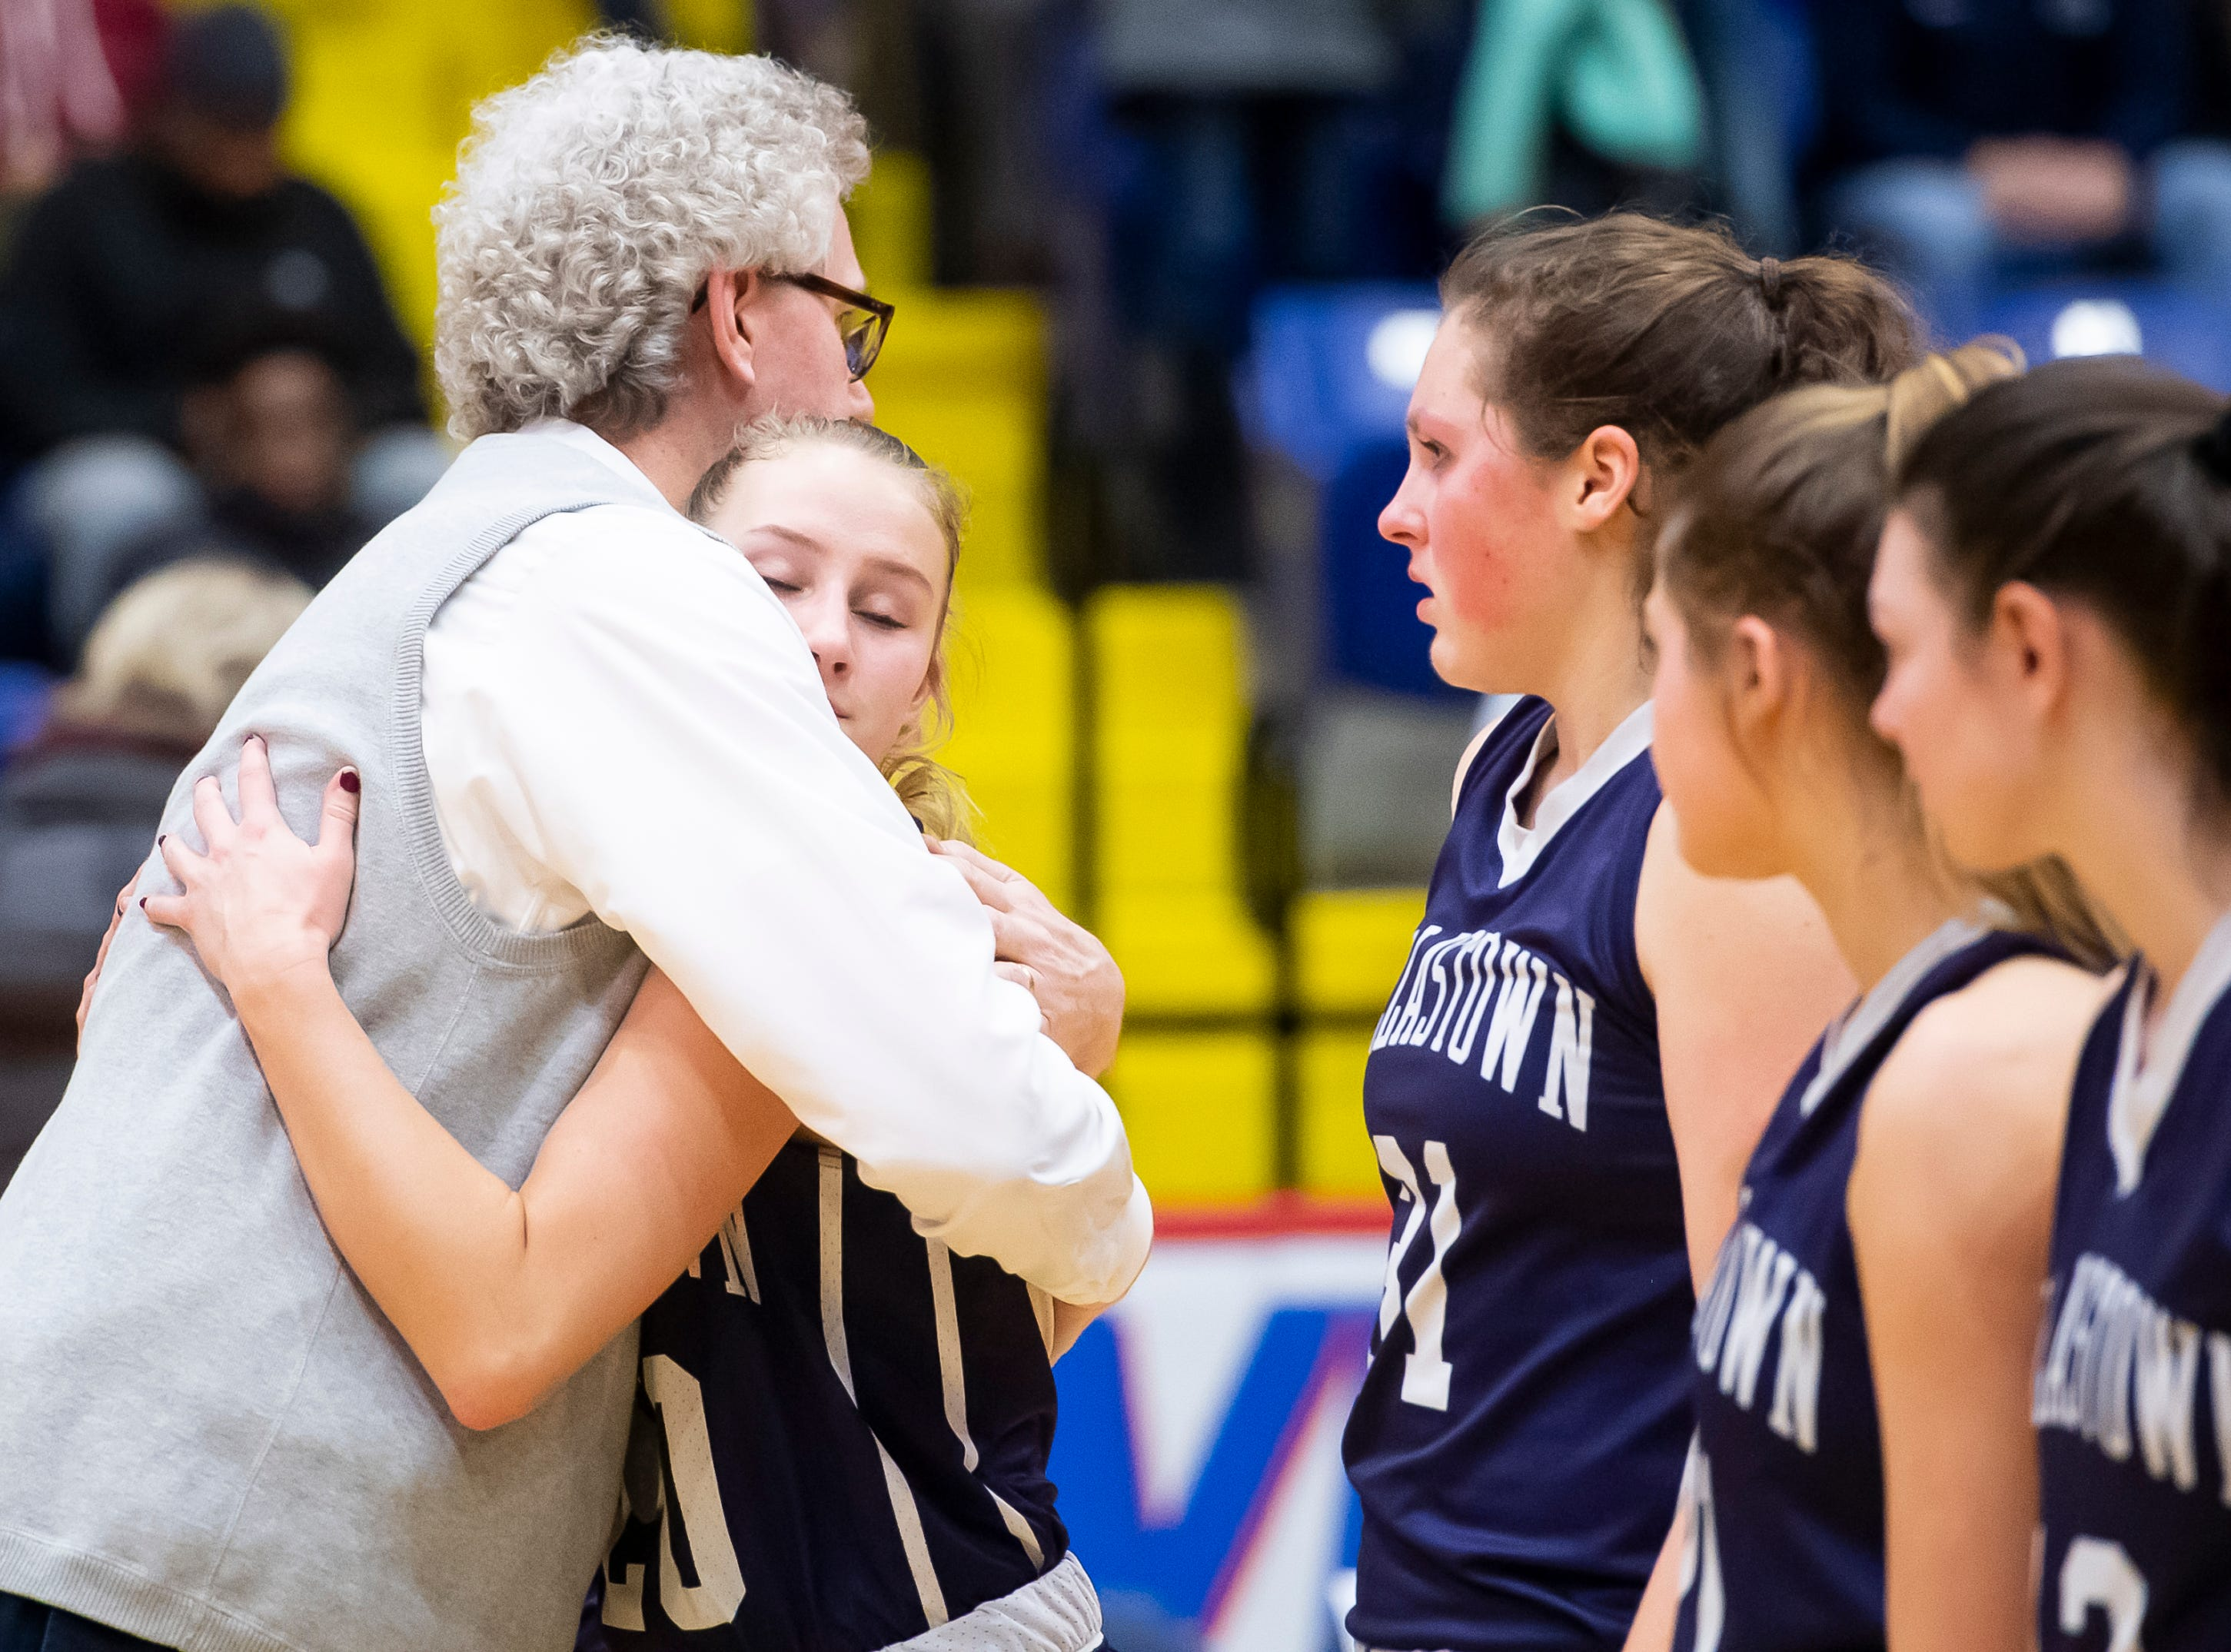 Dallastown head coach Jay Rexroth hugs Lily Jamison after the Wildcats fell in the District 3 6A girls championship game against Cumberland Valley at the Santander Arena in Reading, Pa., Friday, March 1, 2019. Dallastown fell 33-27.